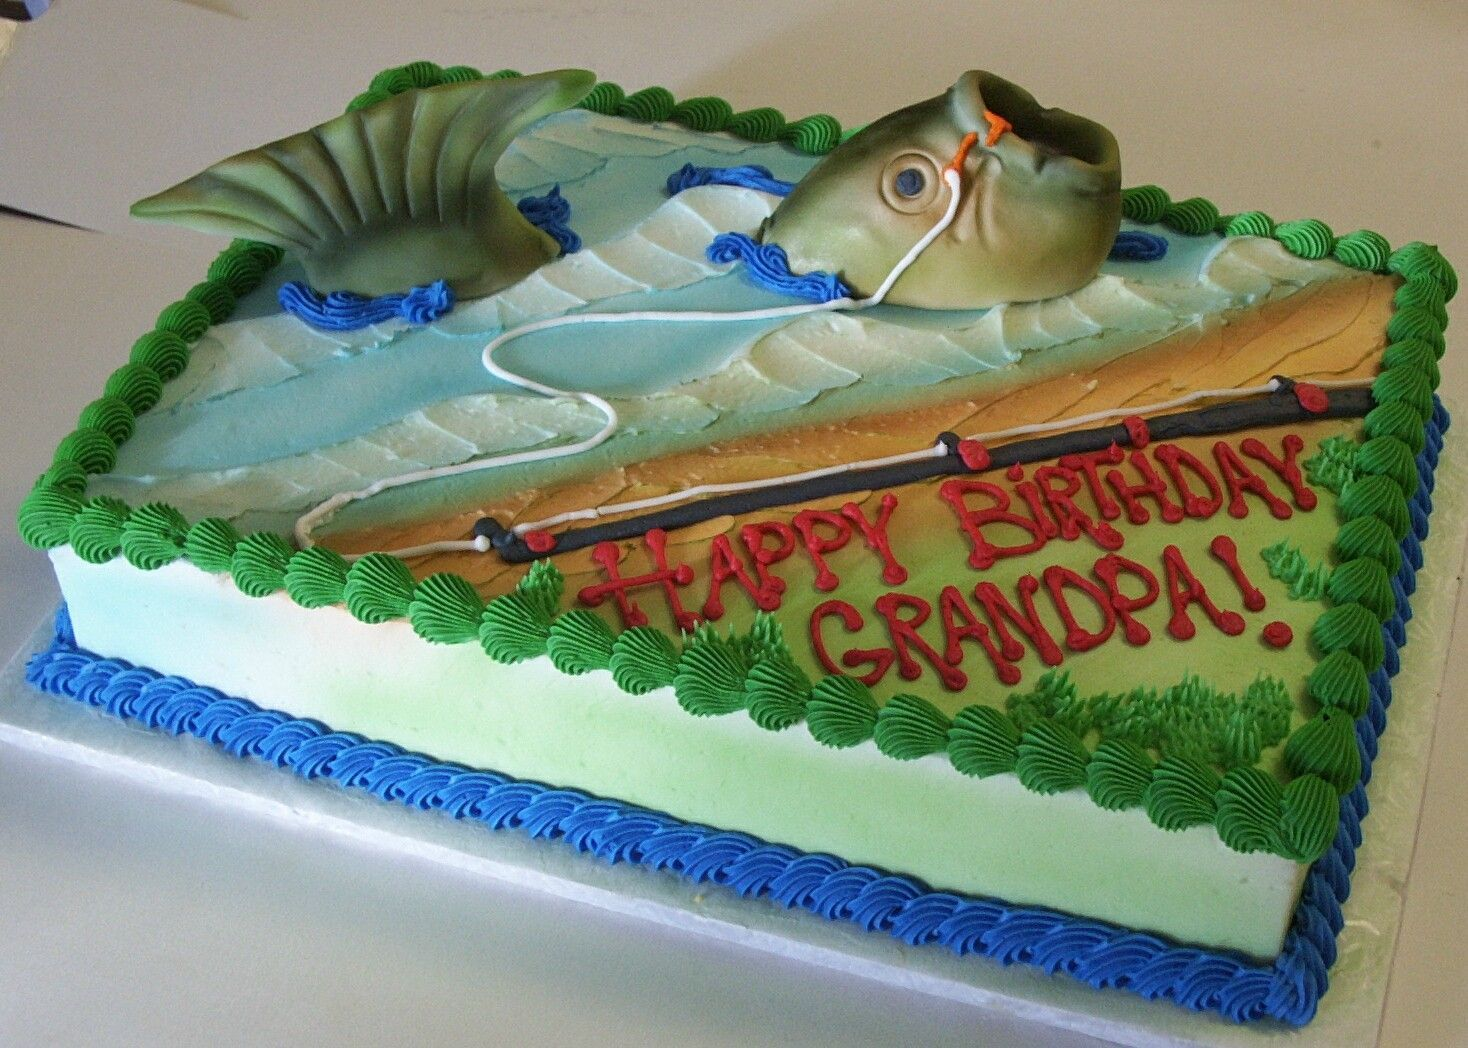 Fishing birthday cakes fish out of water fish birthday for Fish cake design